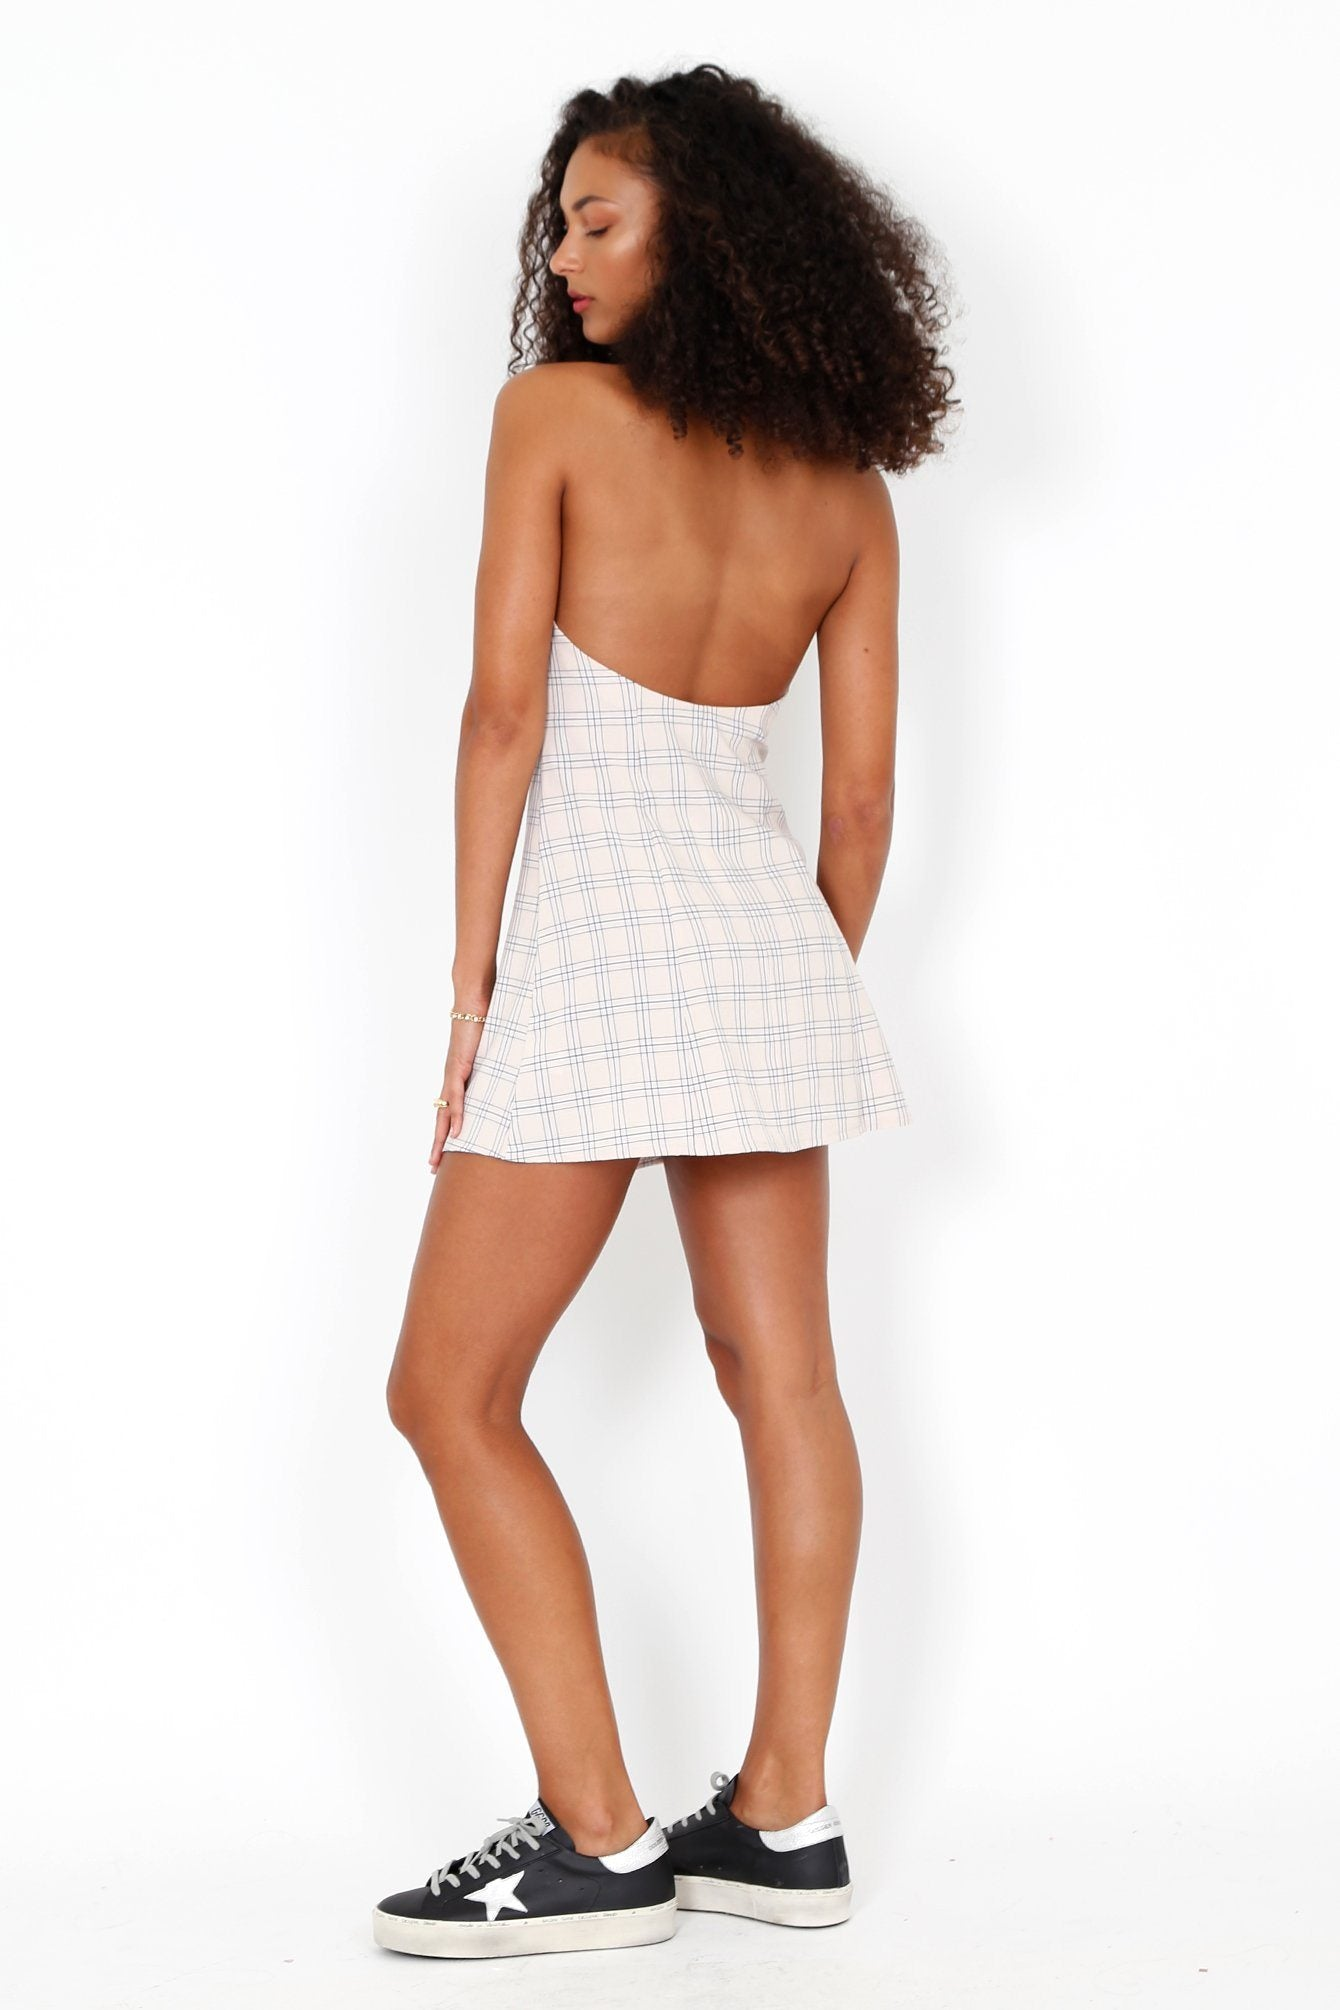 Mad for Plaid Skirt - Scarlet Clothing  - 1